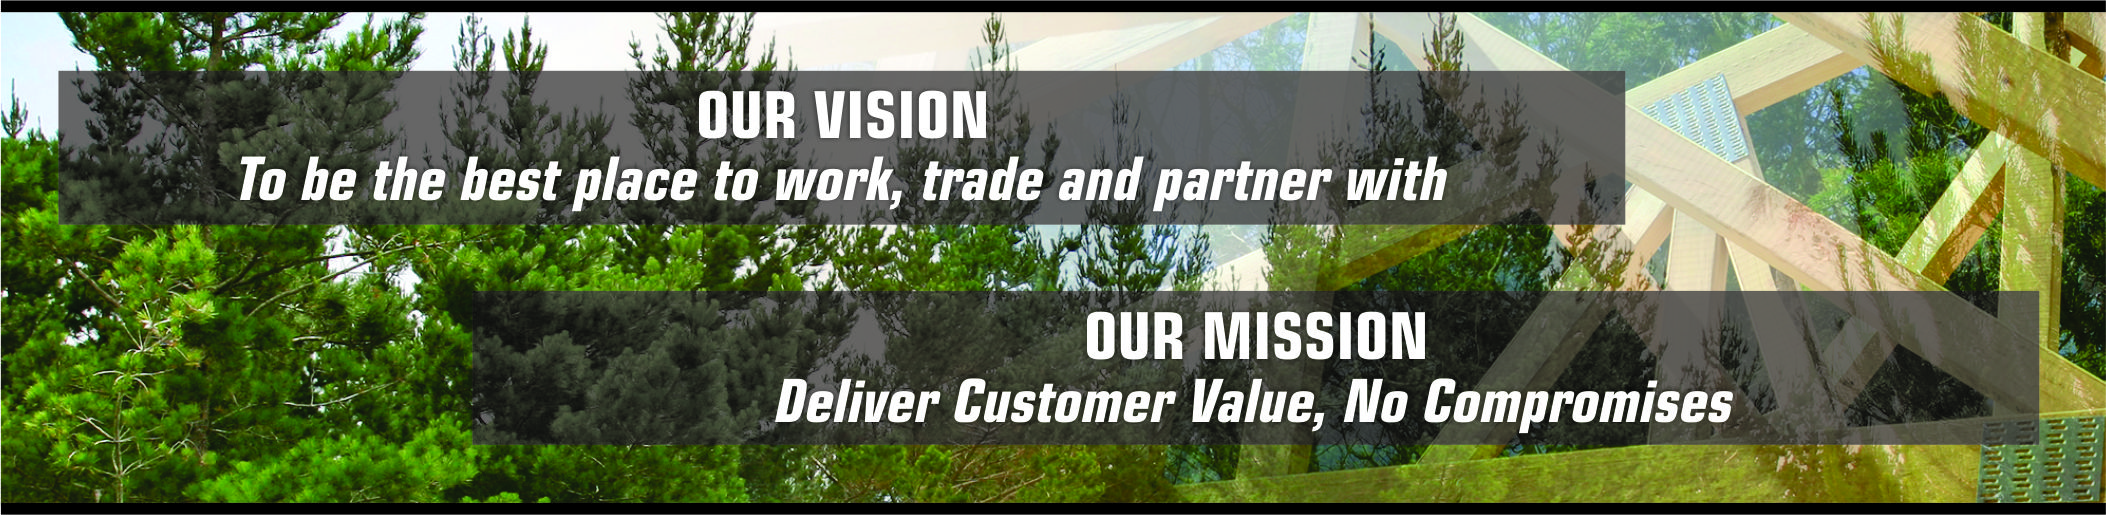 Company Vision & Mission A4